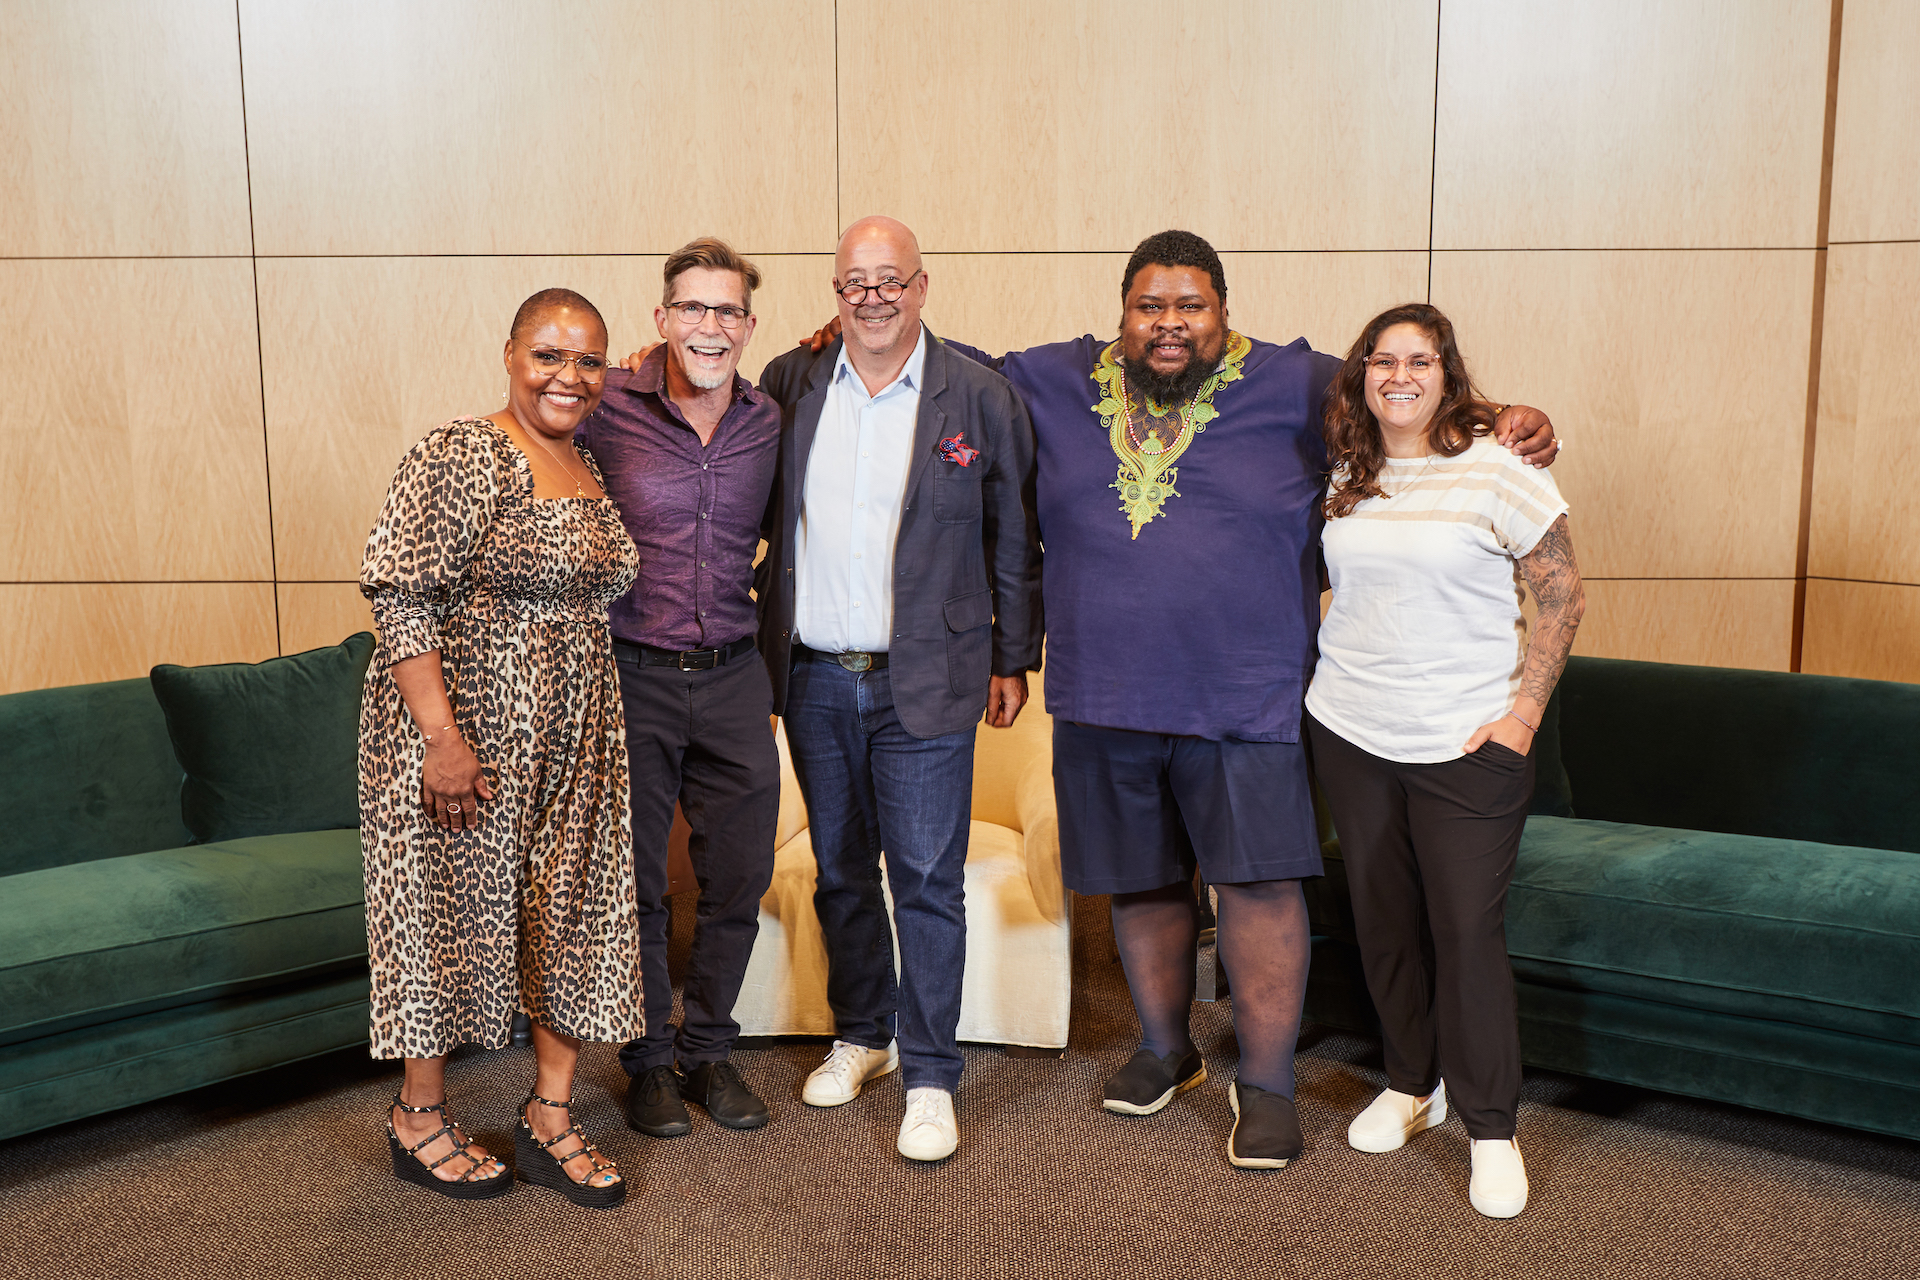 """Conversations at Copia"" panelists (left to right) Tanya Holland, Rick Bayless, Michael Twitty, and Emiliana Puyana with host Andrew Zimmern (center)."